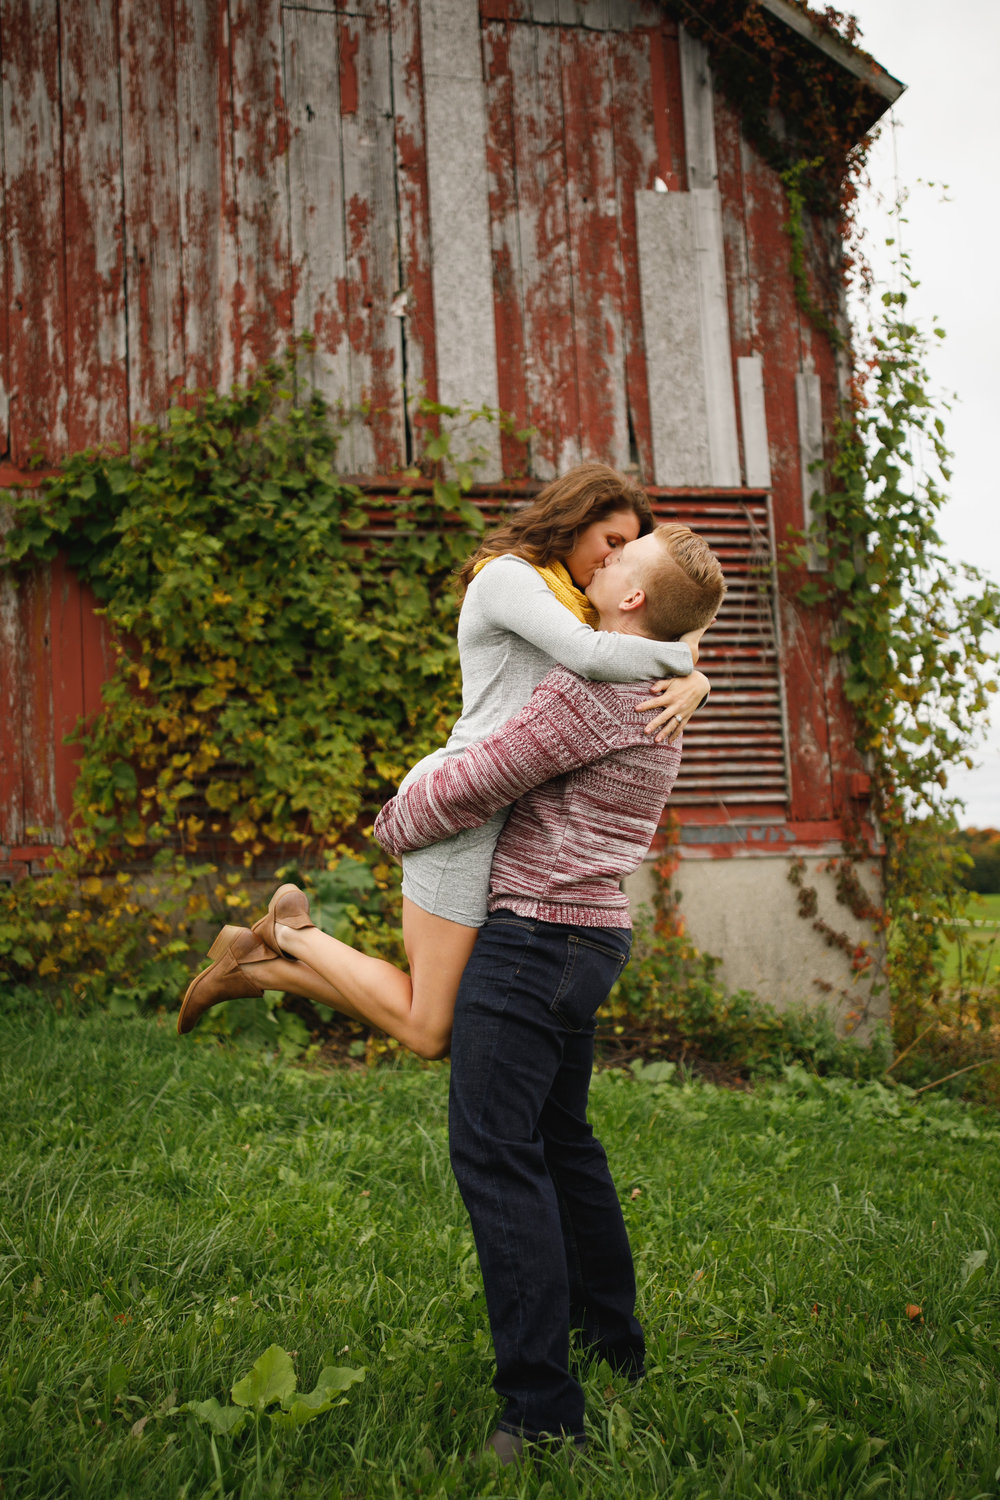 grandrapids_grandrapidsphotographer_grandrapidsweddingphotographer_jessicadarling_jdarlingphoto_engaged_countryengagementsession_fall_fallengagementsession_weddingphotographer_foliage_karlyandsam_westmichiganweddingphotographer_westmichigan 013.jpg